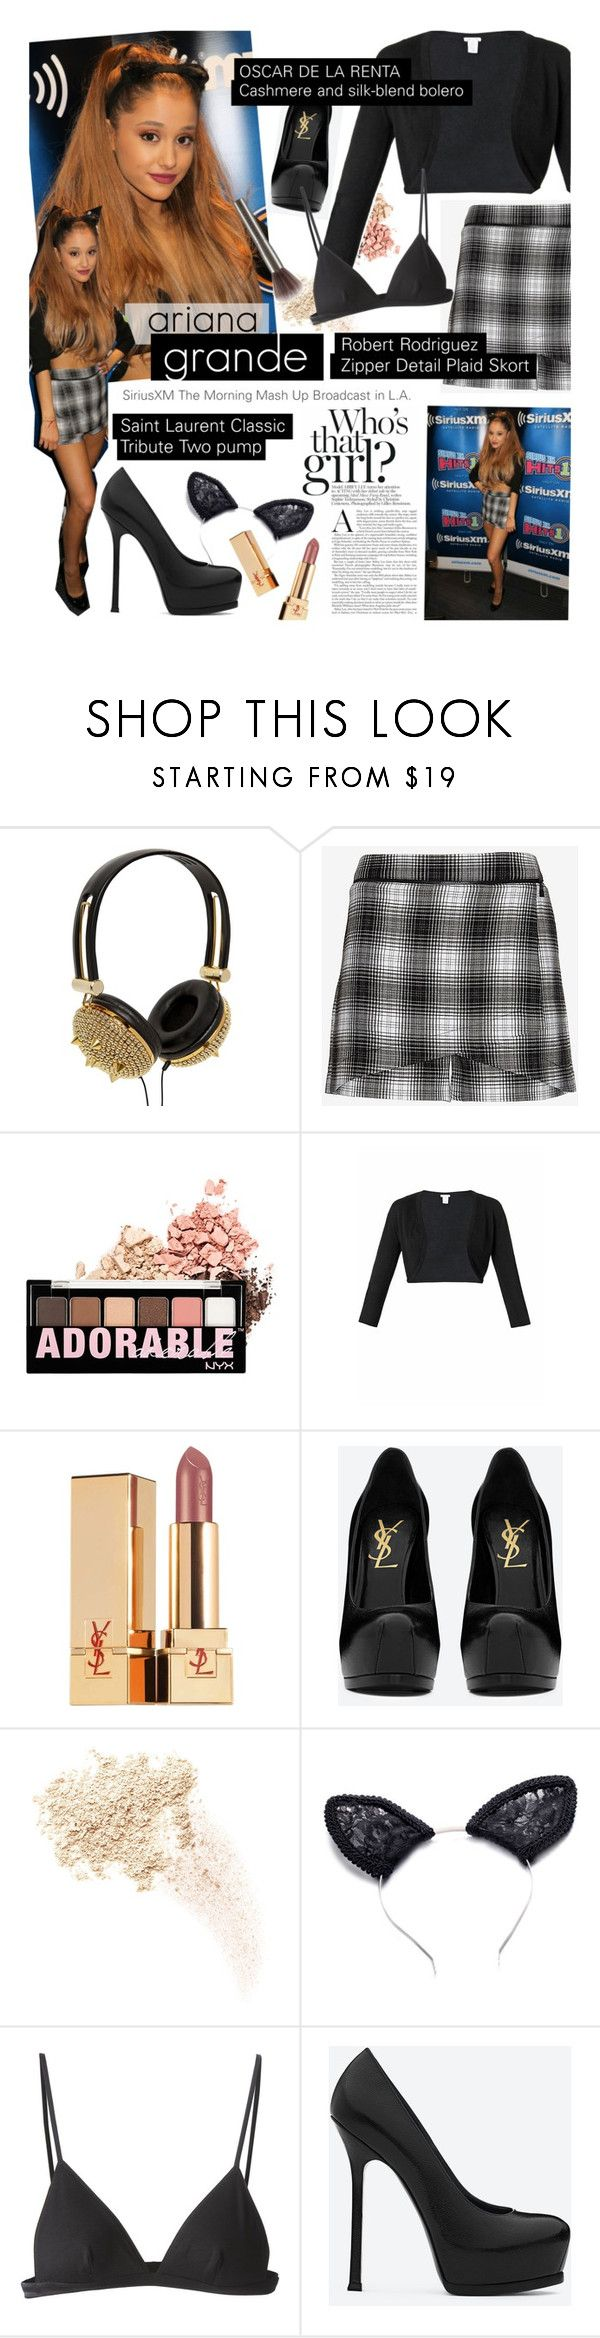 """""""GET THE LOOK: Ariana Grande"""" by houseofhauteness ❤ liked on Polyvore featuring NY&Lon MonnaLisa, Robert Rodriguez, NYX, Oscar de la Renta, Yves Saint Laurent, Too Faced Cosmetics, T By Alexander Wang, Urban Decay, GetTheLook and YSL"""